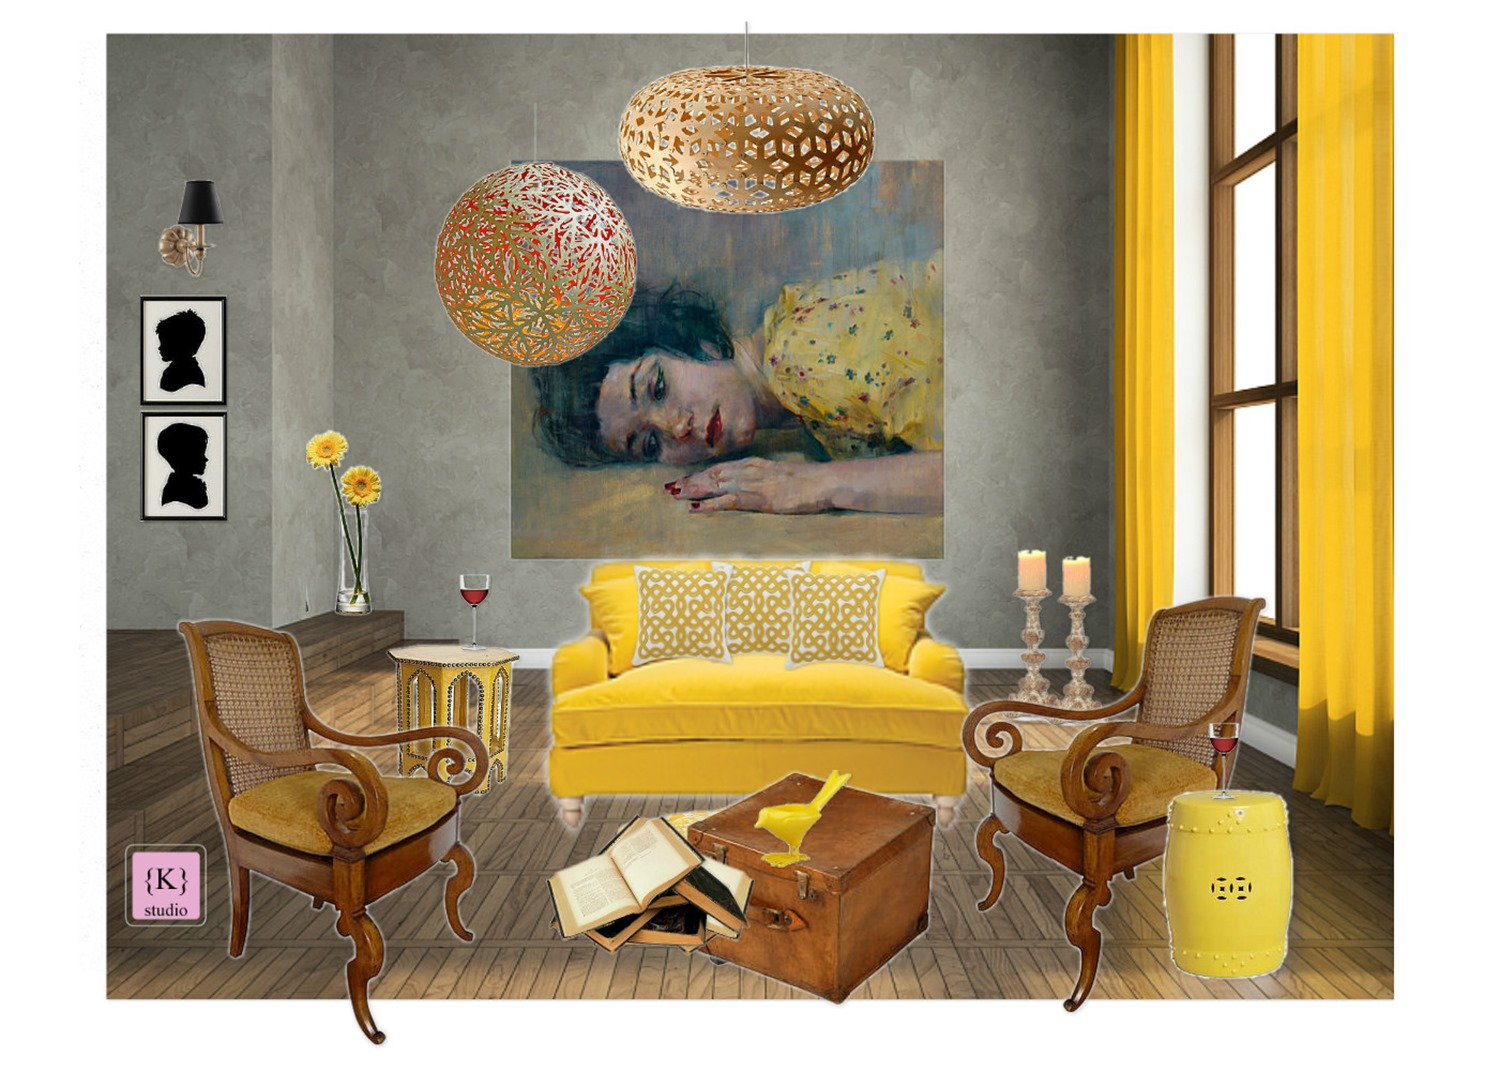 design board: yellow for living room -konstadina nastou- {.k.} blog, Κωνσταντίνα Νάστου